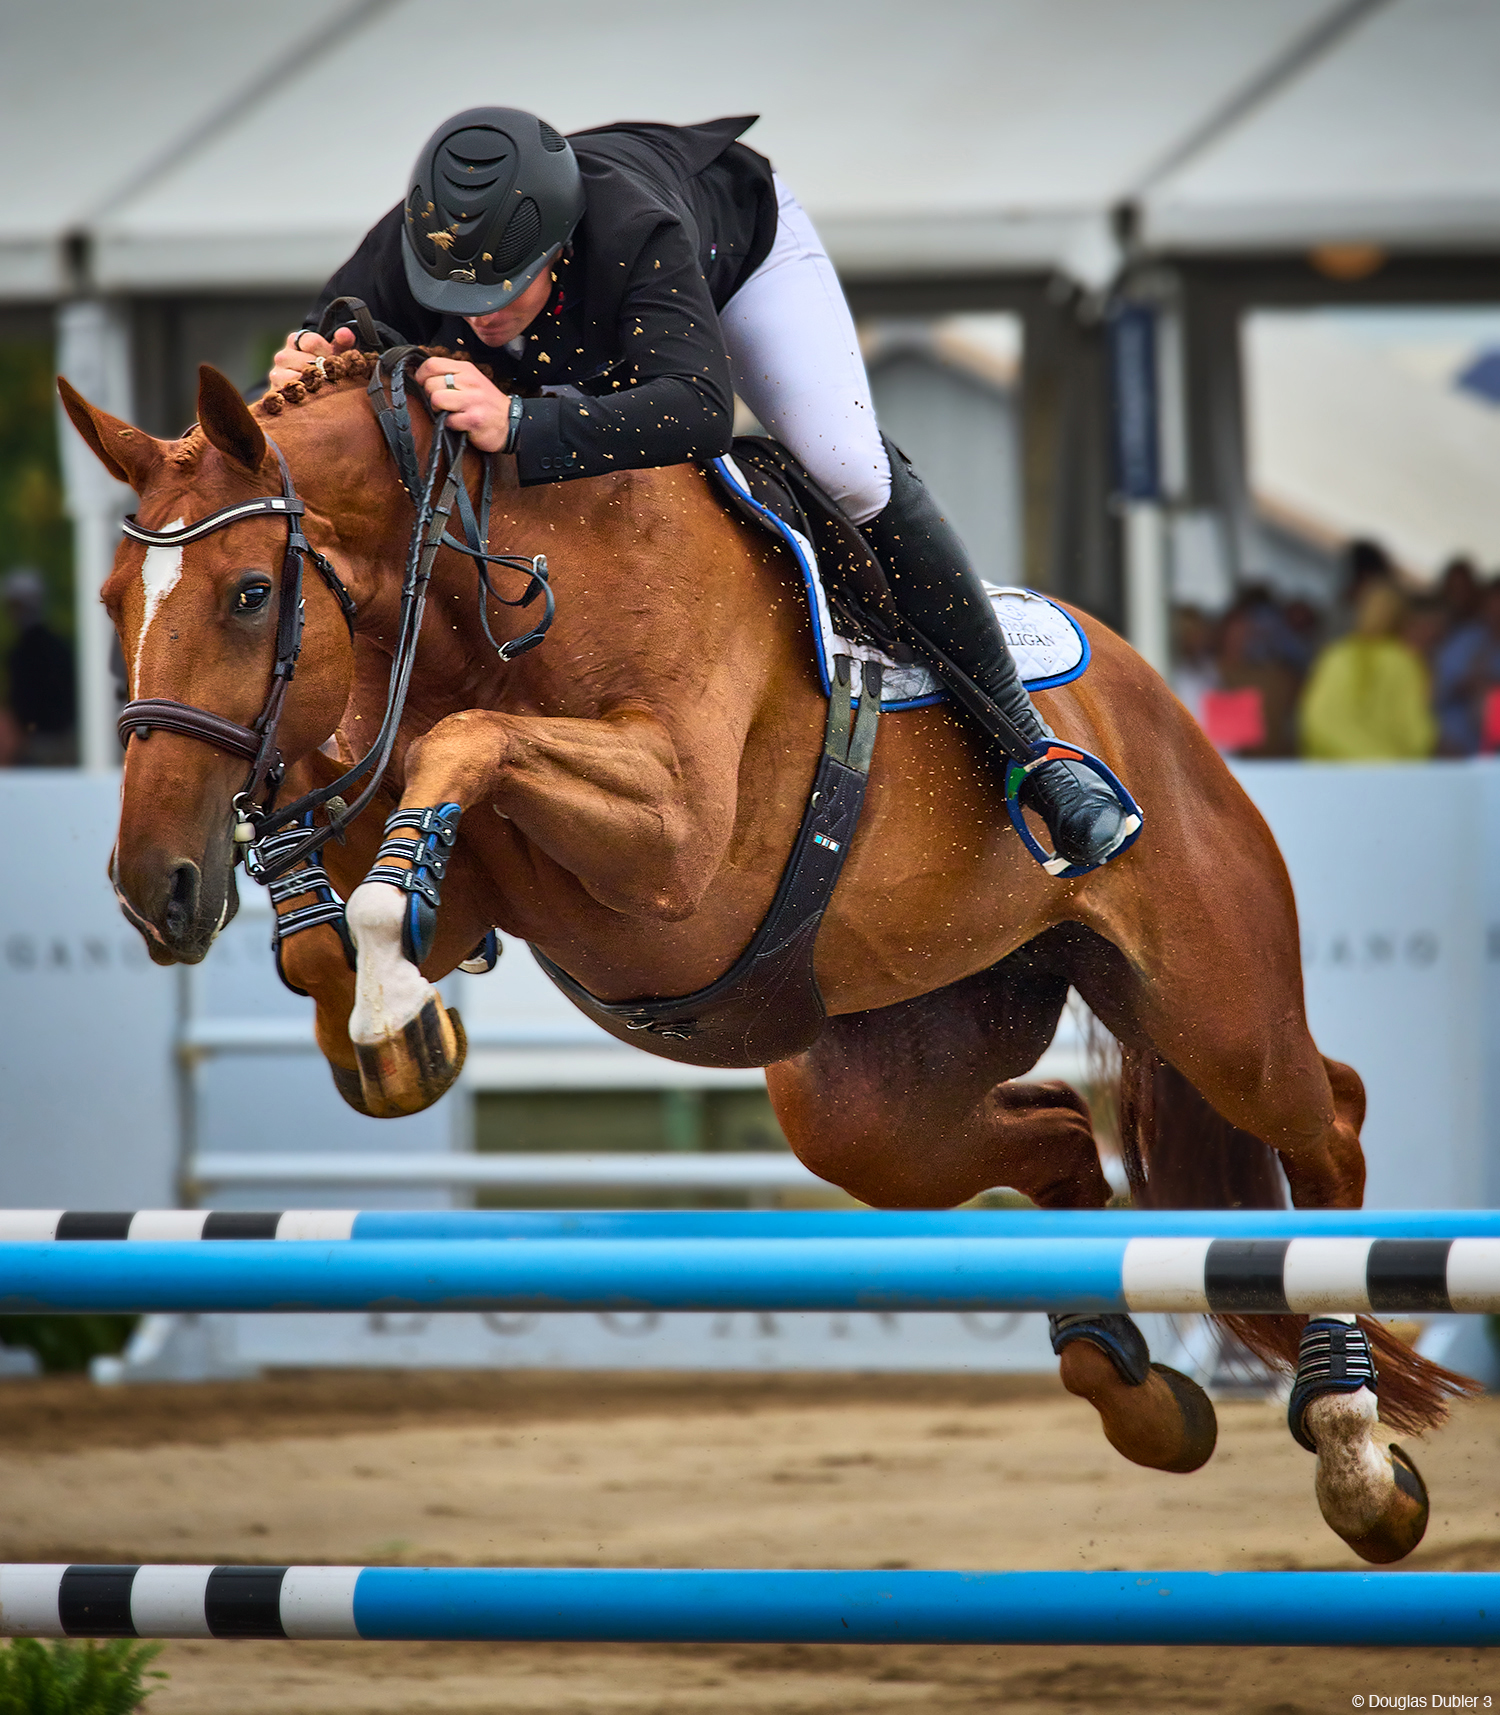 Photo of a jumping horse